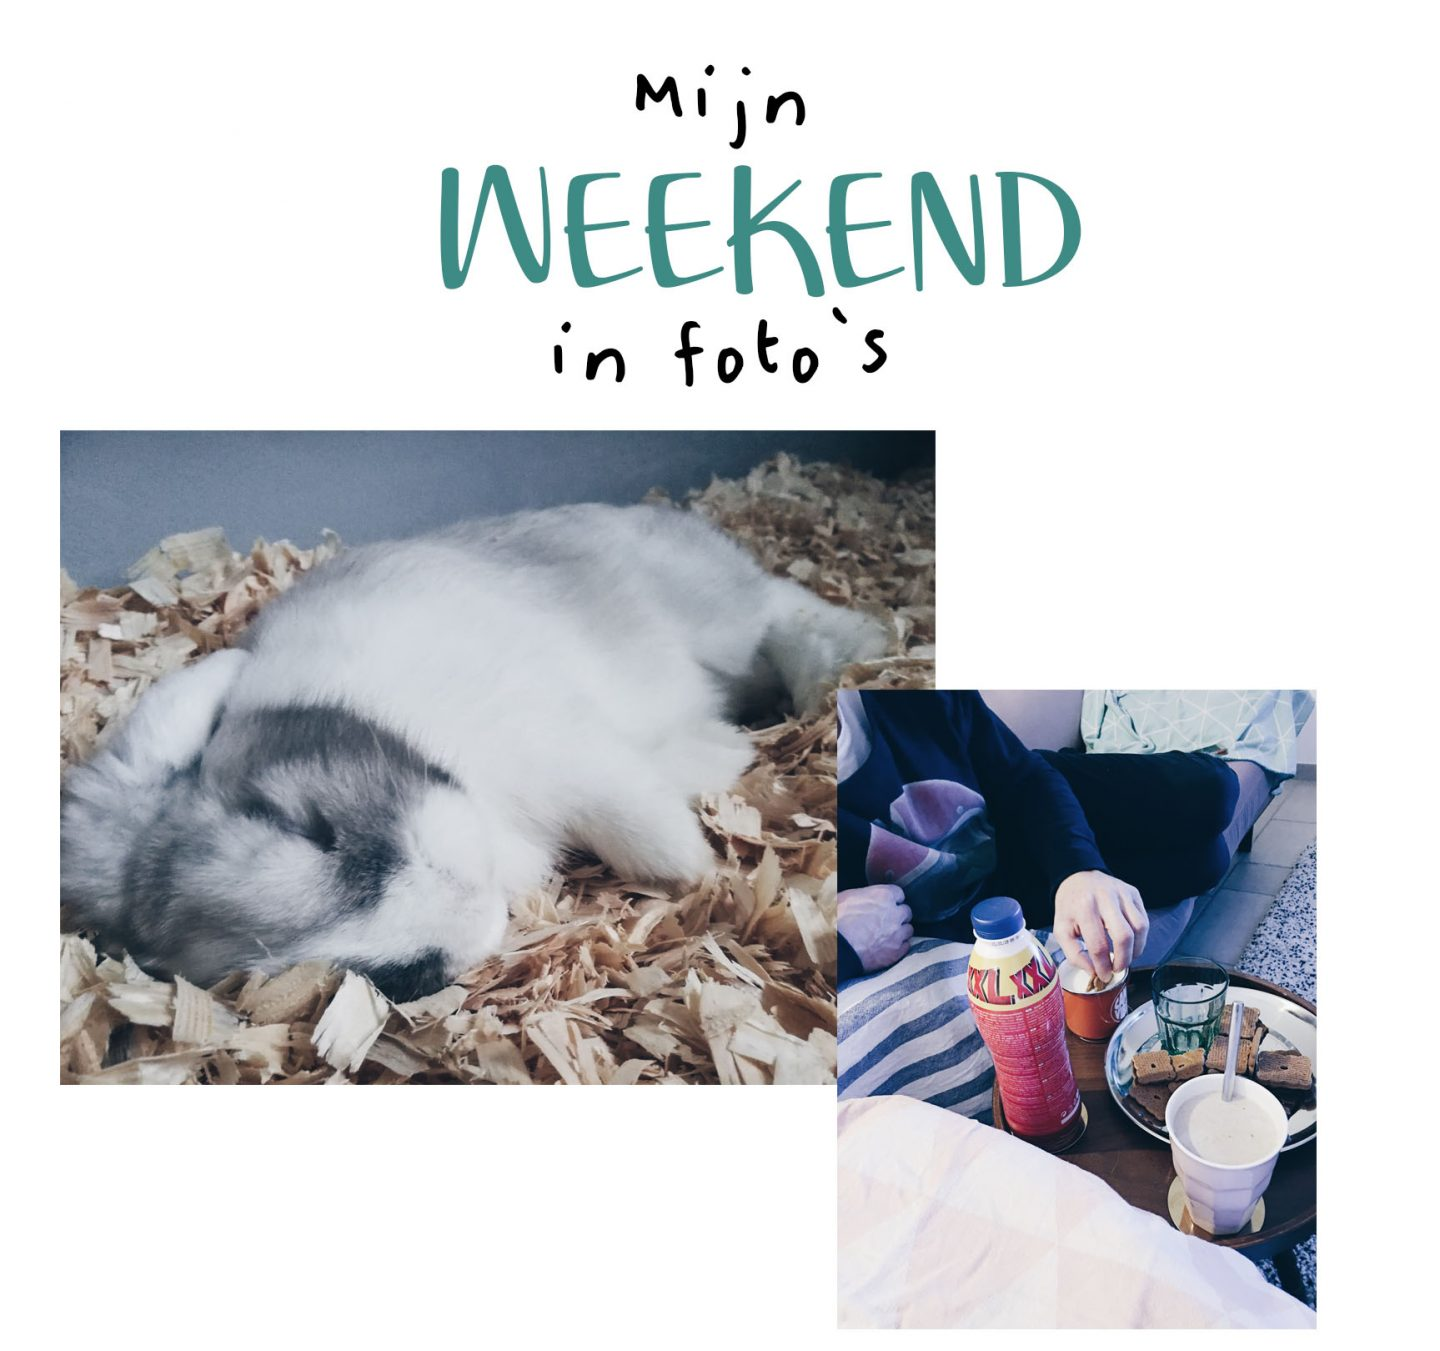 Mijn weekend in foto's.